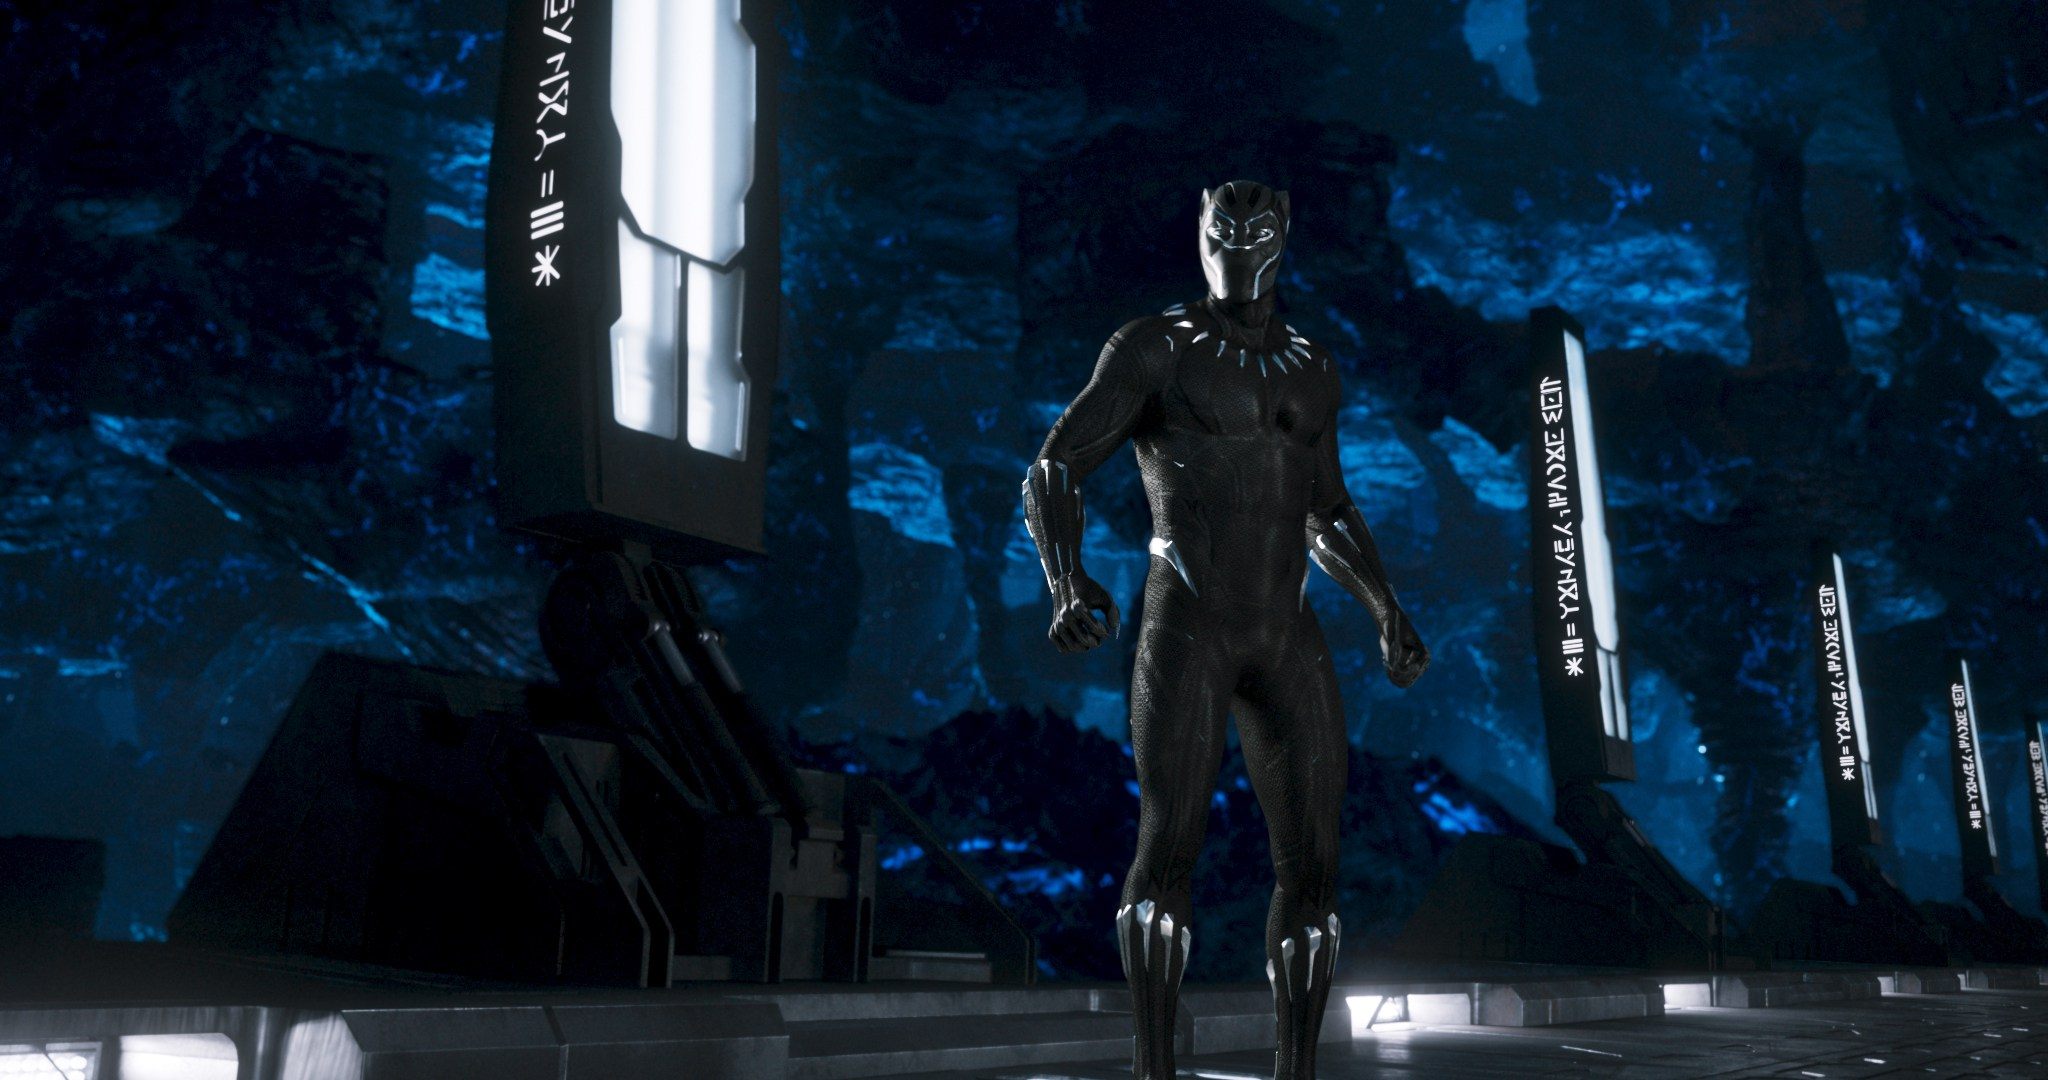 Black Panther 2018 Movie Still Full Hd Wallpaper: 3840x2160 Marvel Black Panther Movie 2018 4k HD 4k